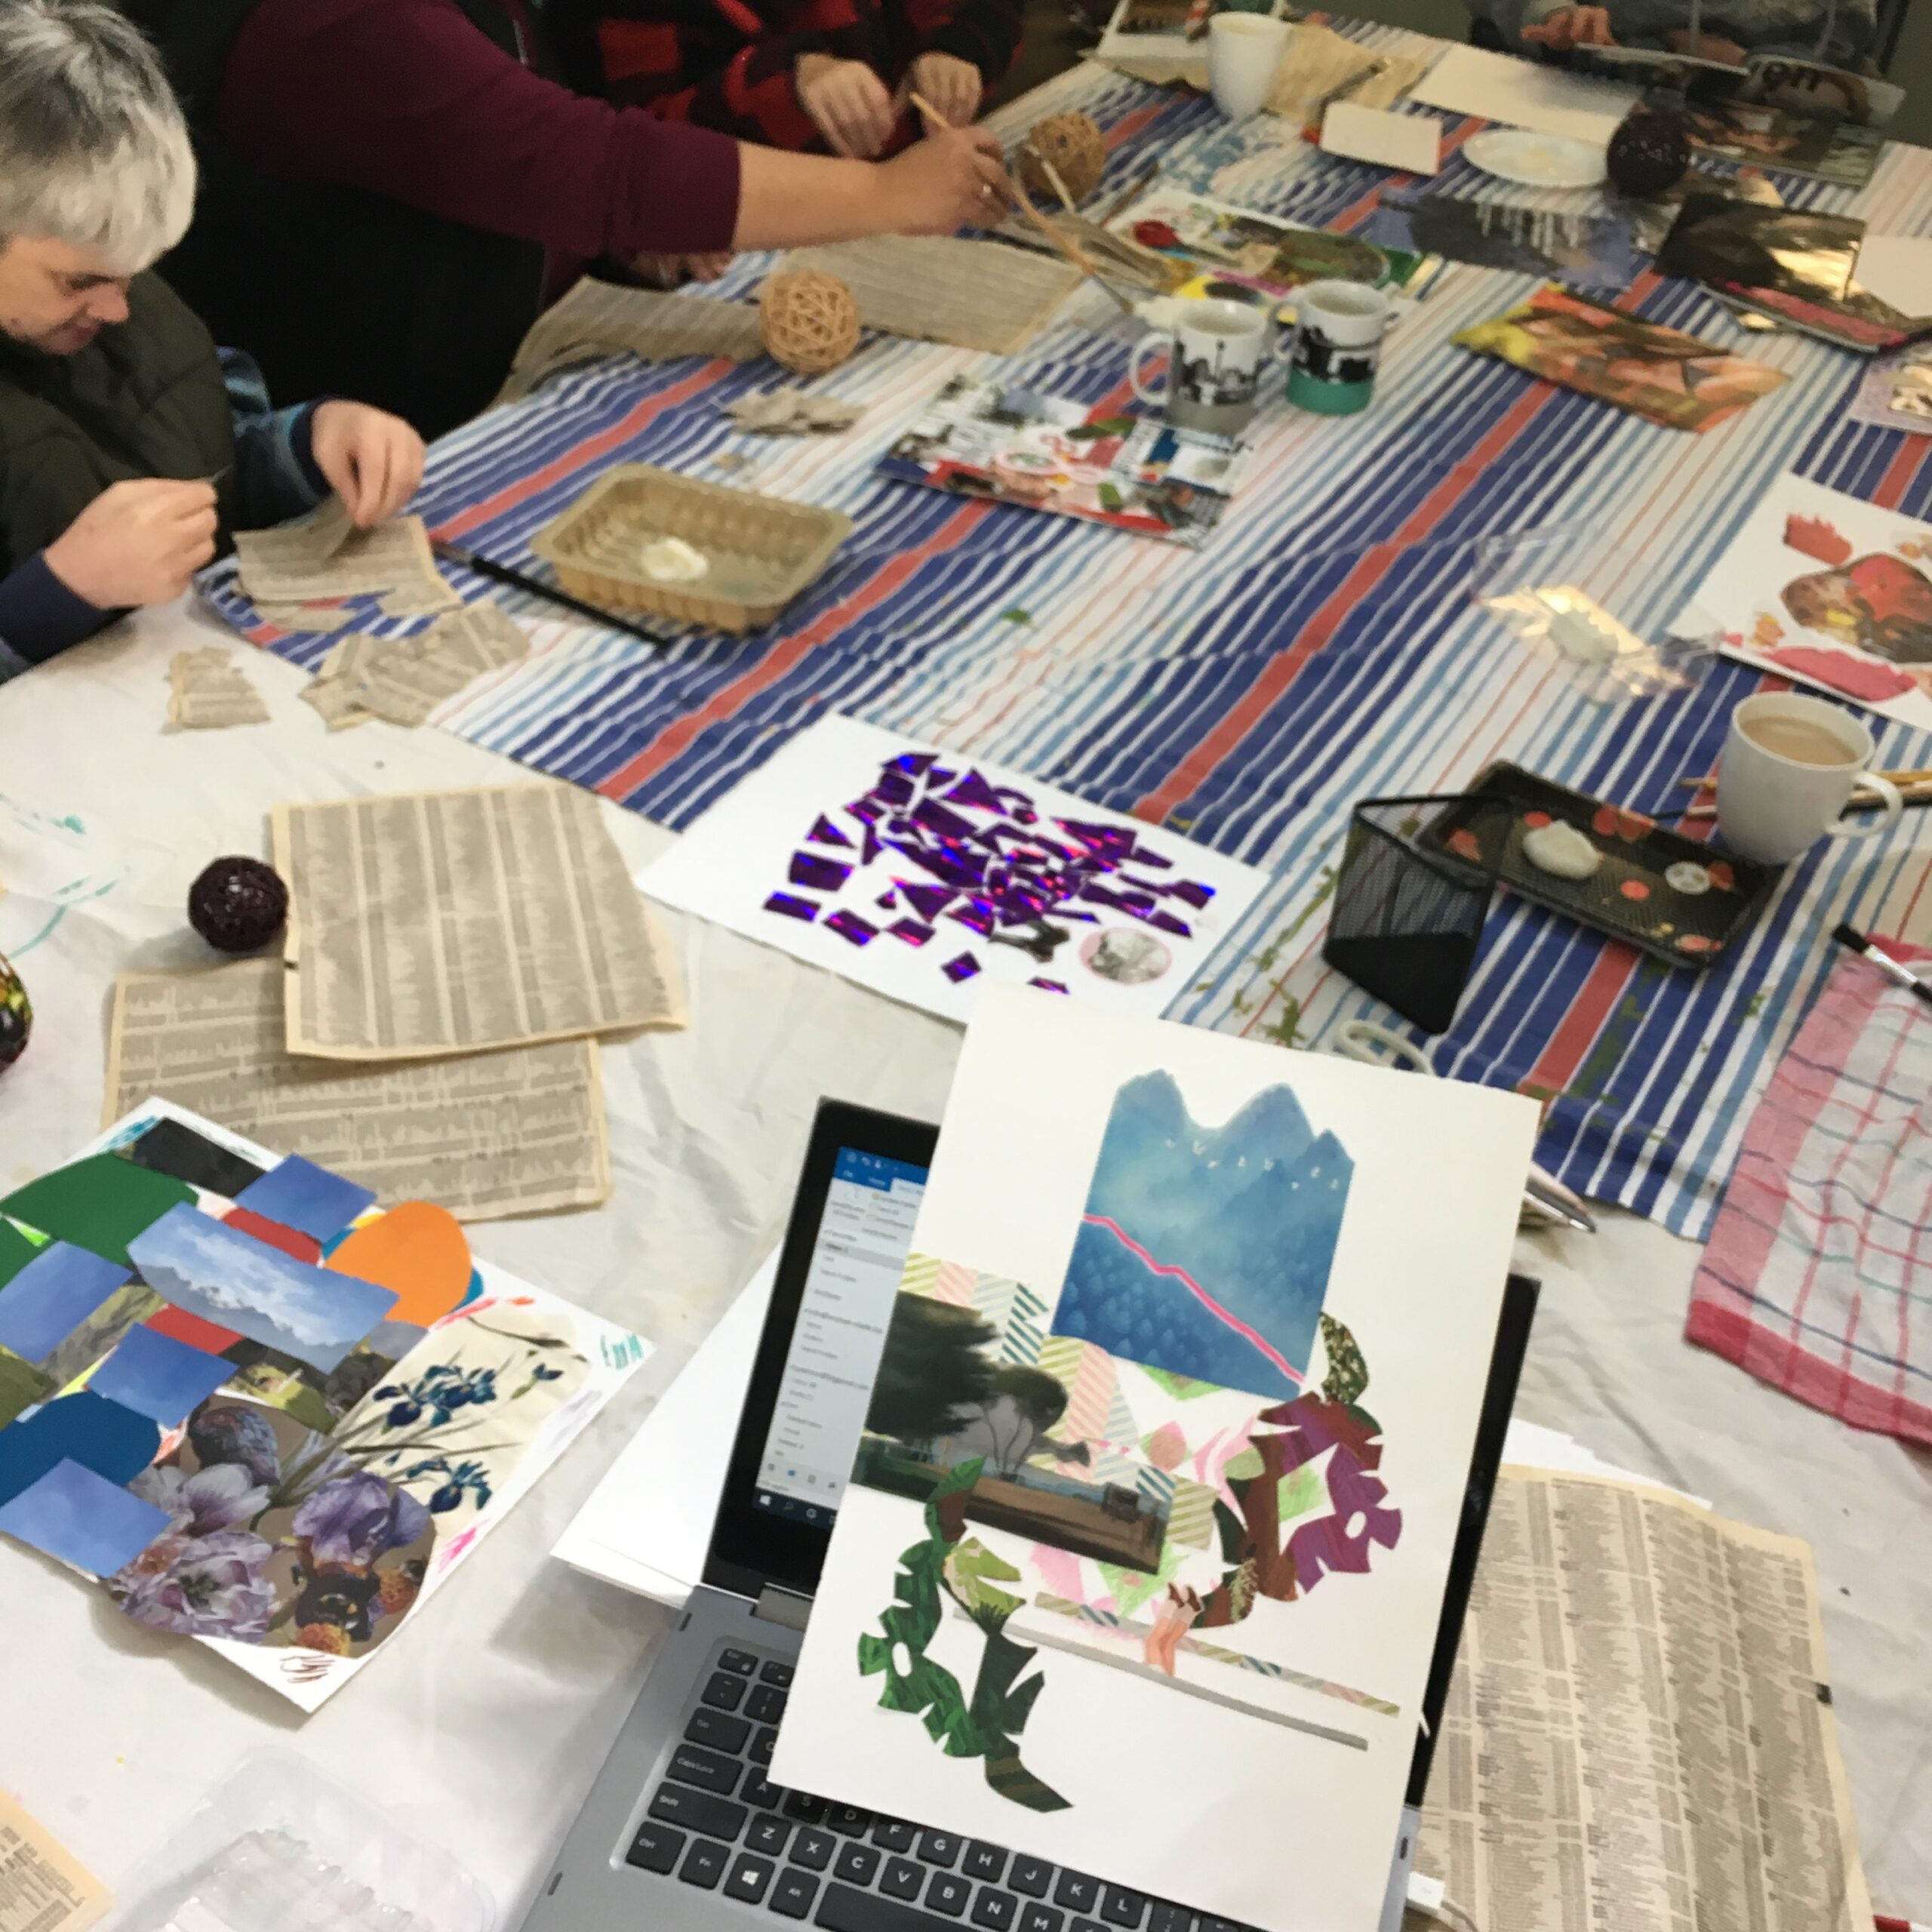 people making collages at a large table